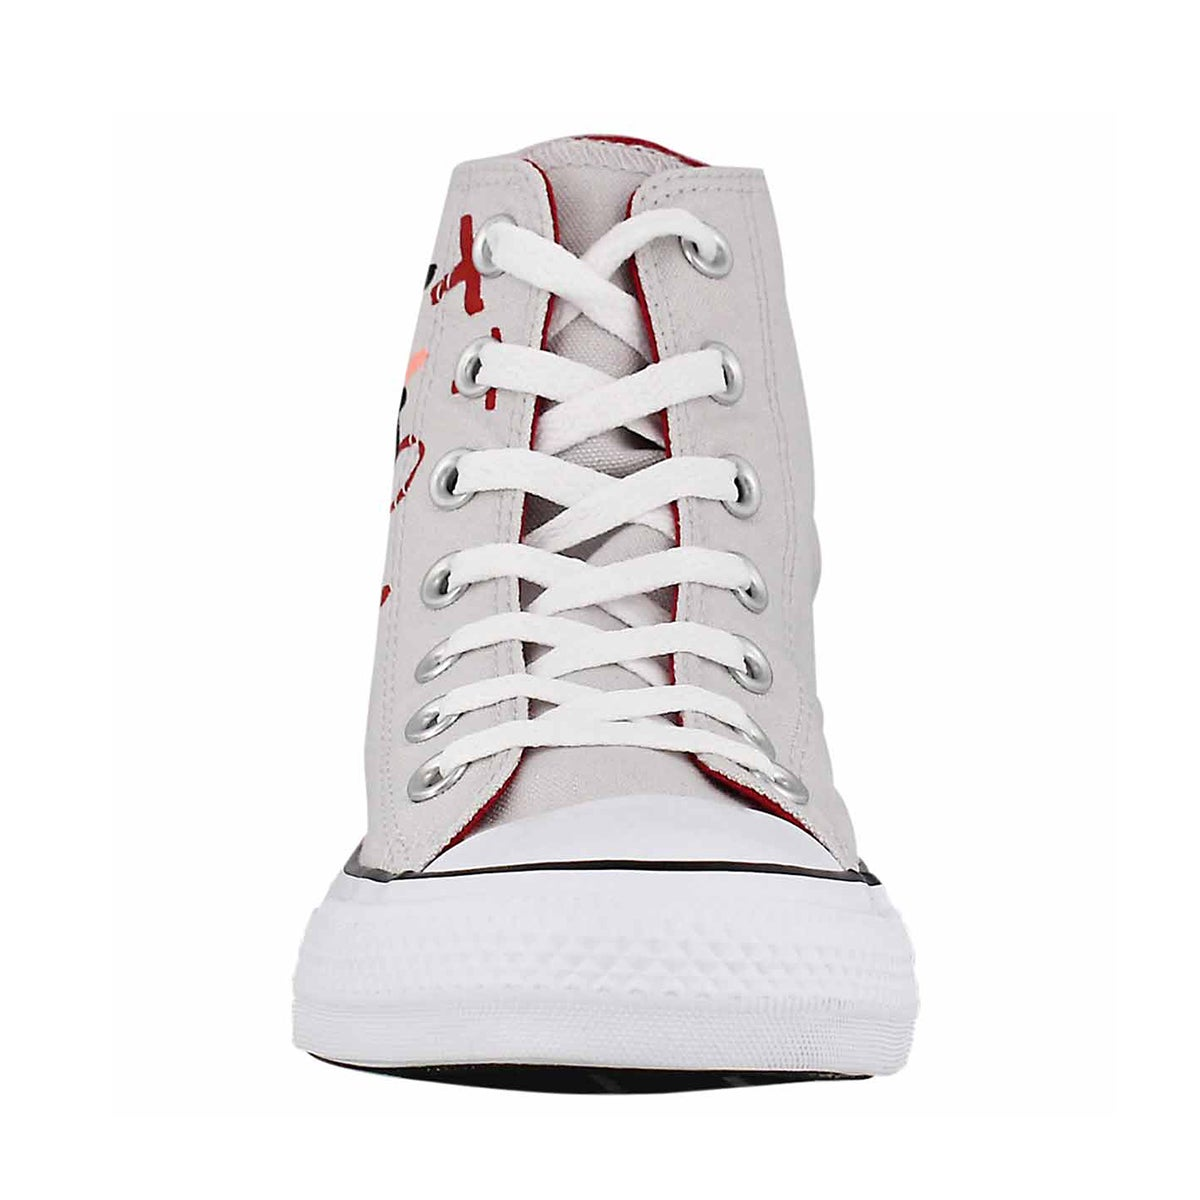 Lds CTAS Bleeding Love Hi mouse/red snkr